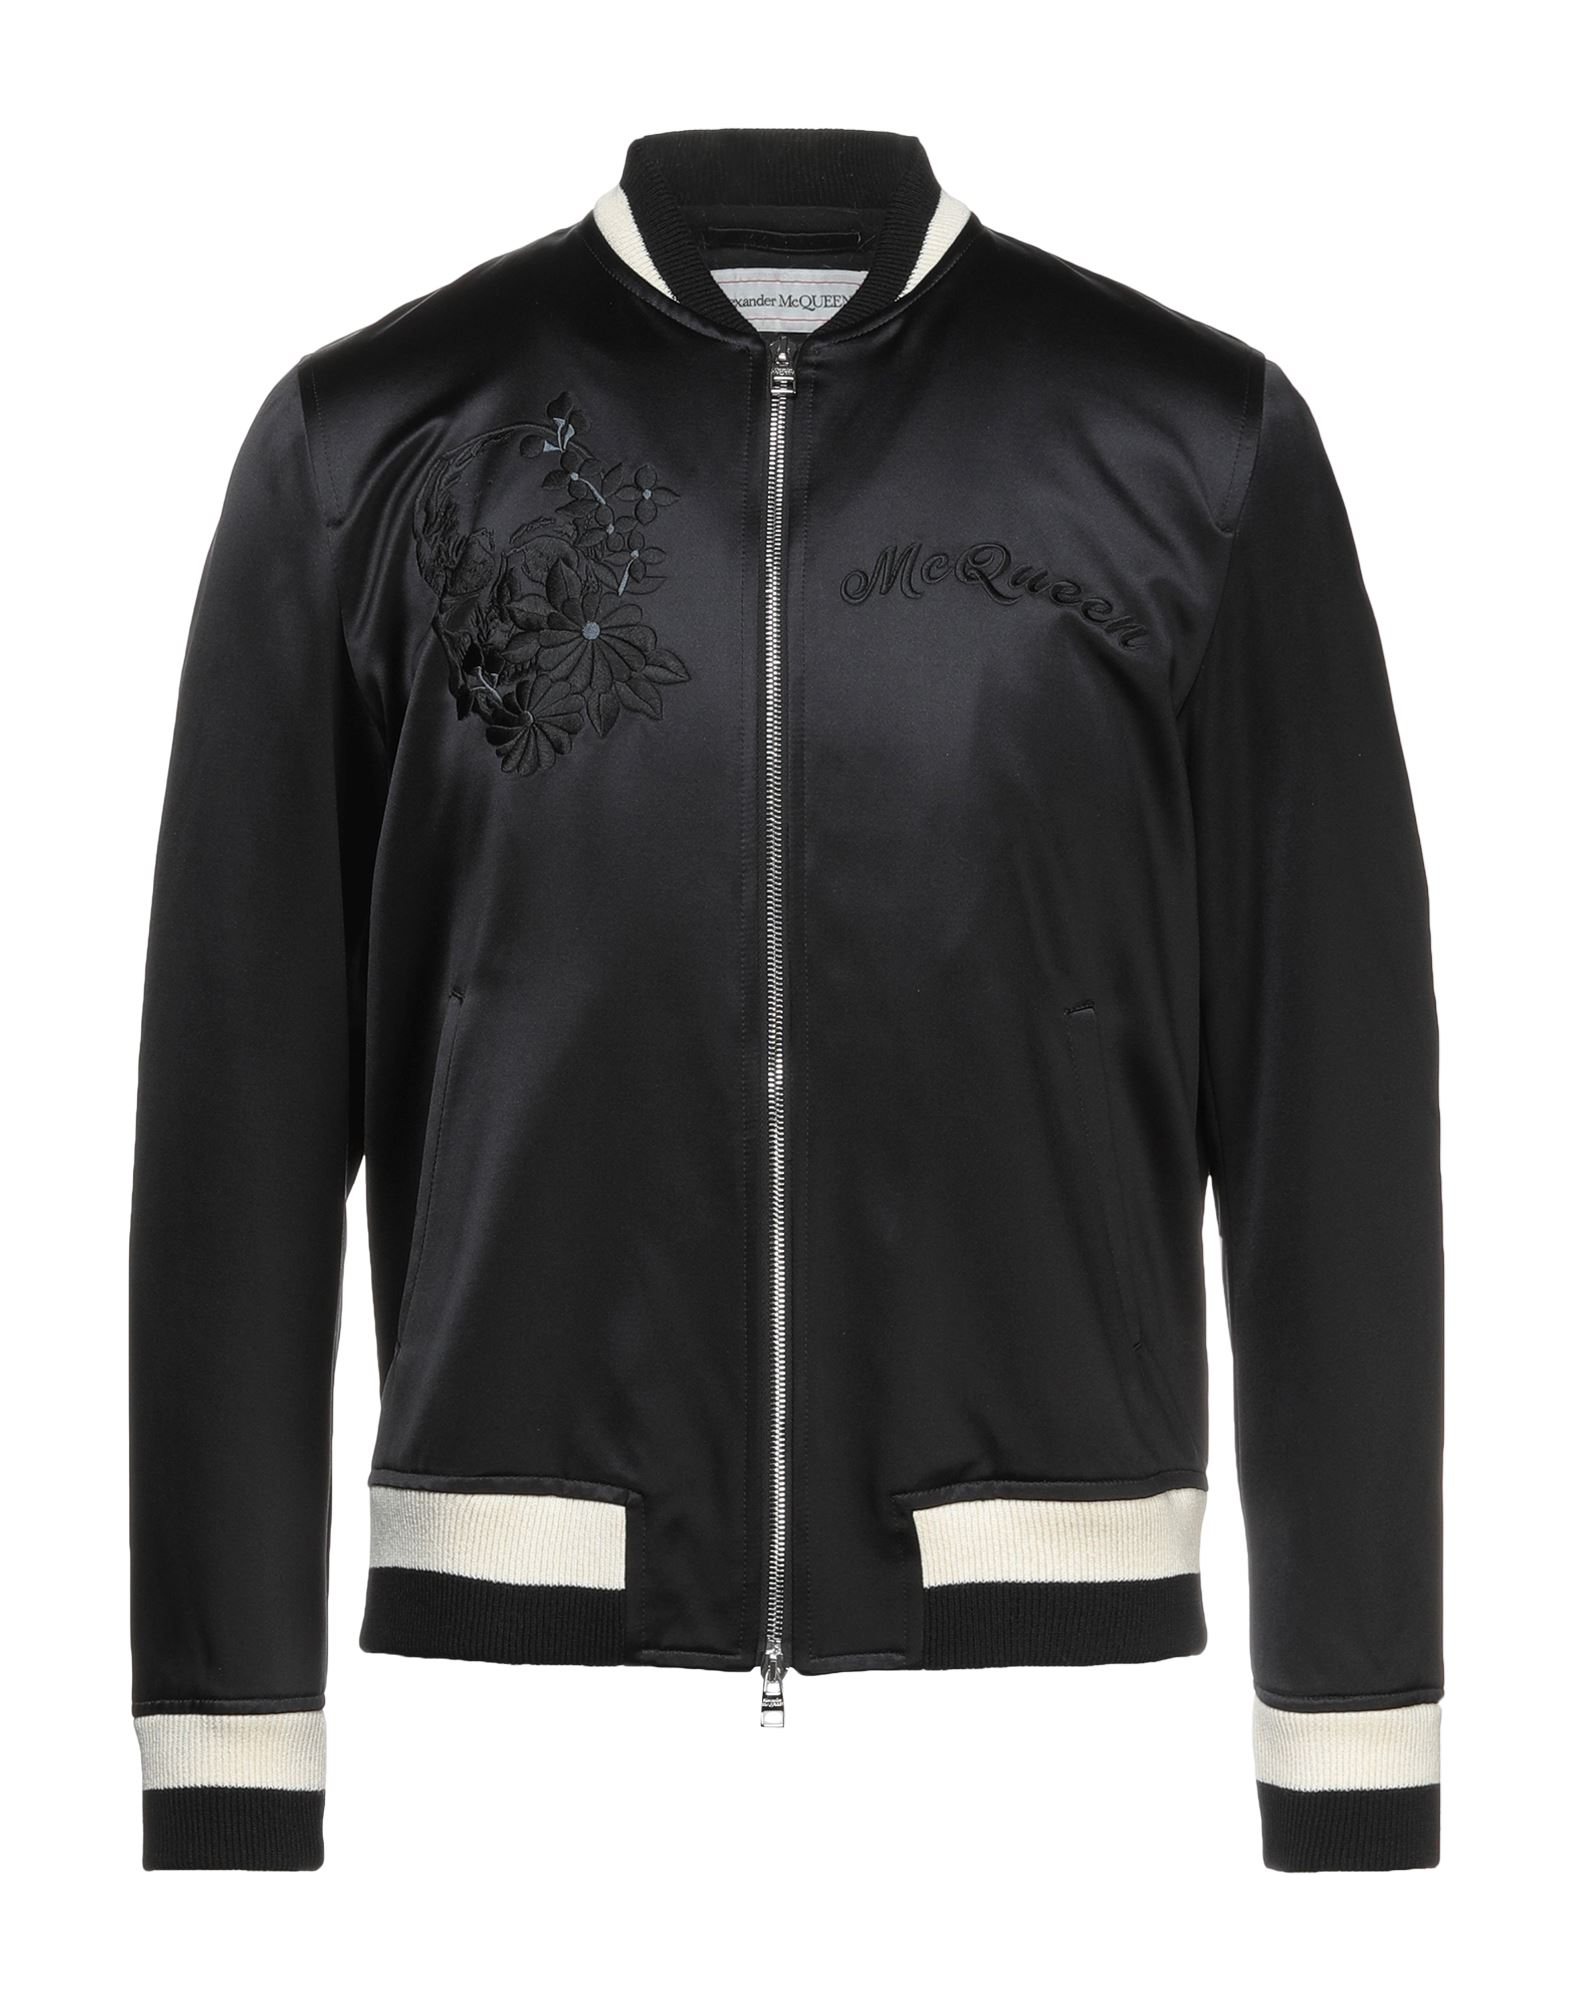 ALEXANDER MCQUEEN Jackets. satin, logo, embroidered detailing, solid color, single-breasted, zipper closure, round collar, multipockets, two inside pockets, long sleeves, fully lined. 60% Cotton, 40% Silk, Viscose, Polyester